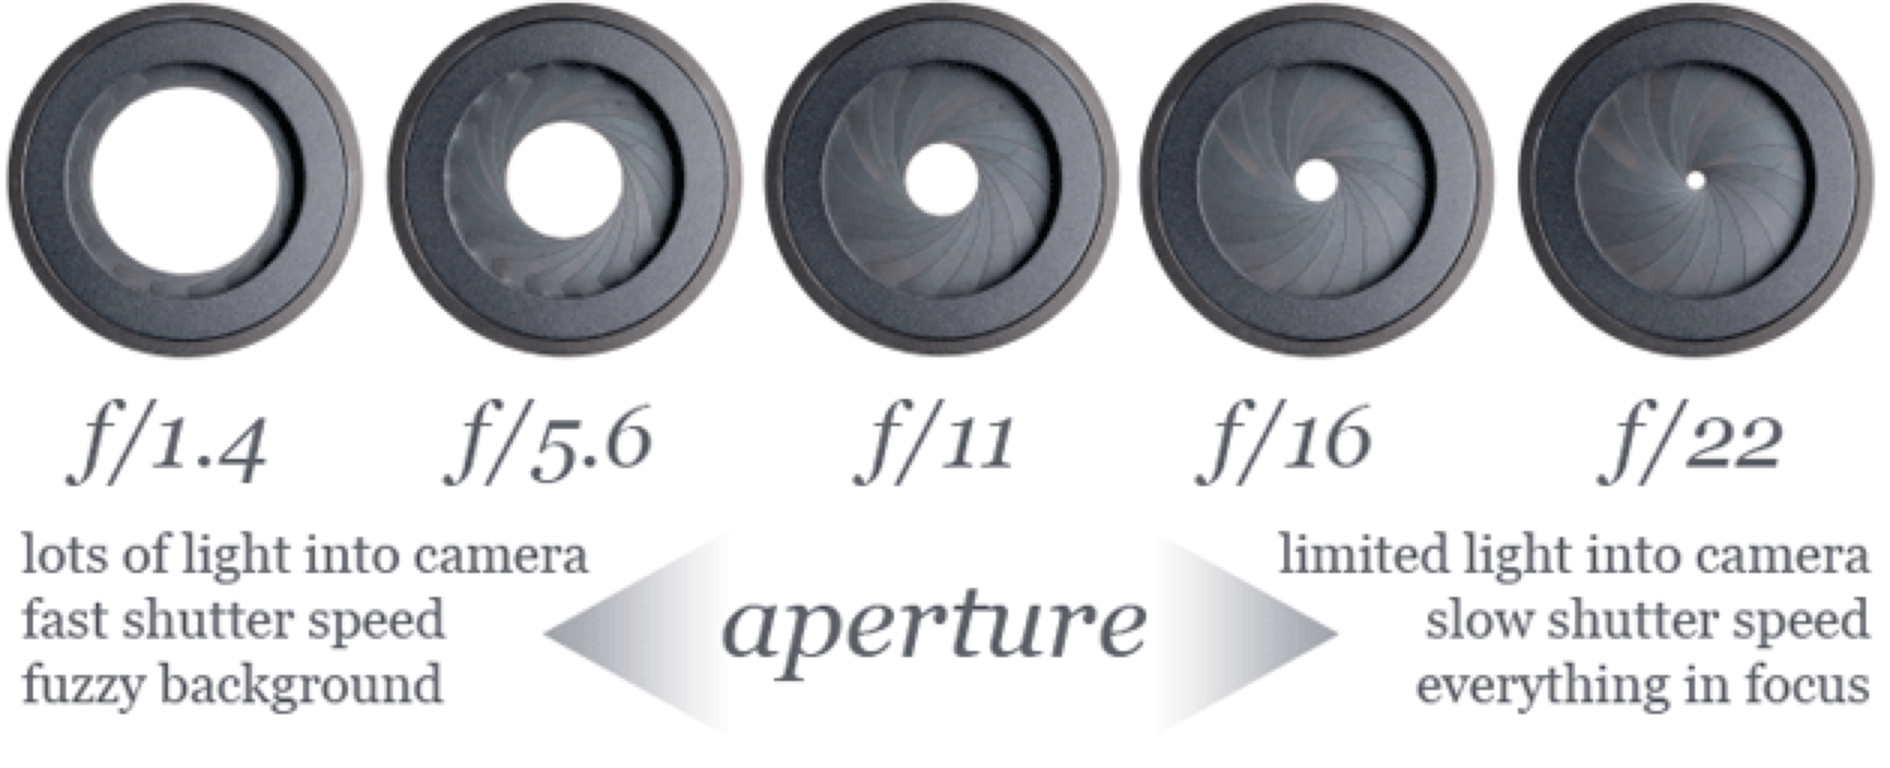 Aperture by brooke haller pooptronica Images